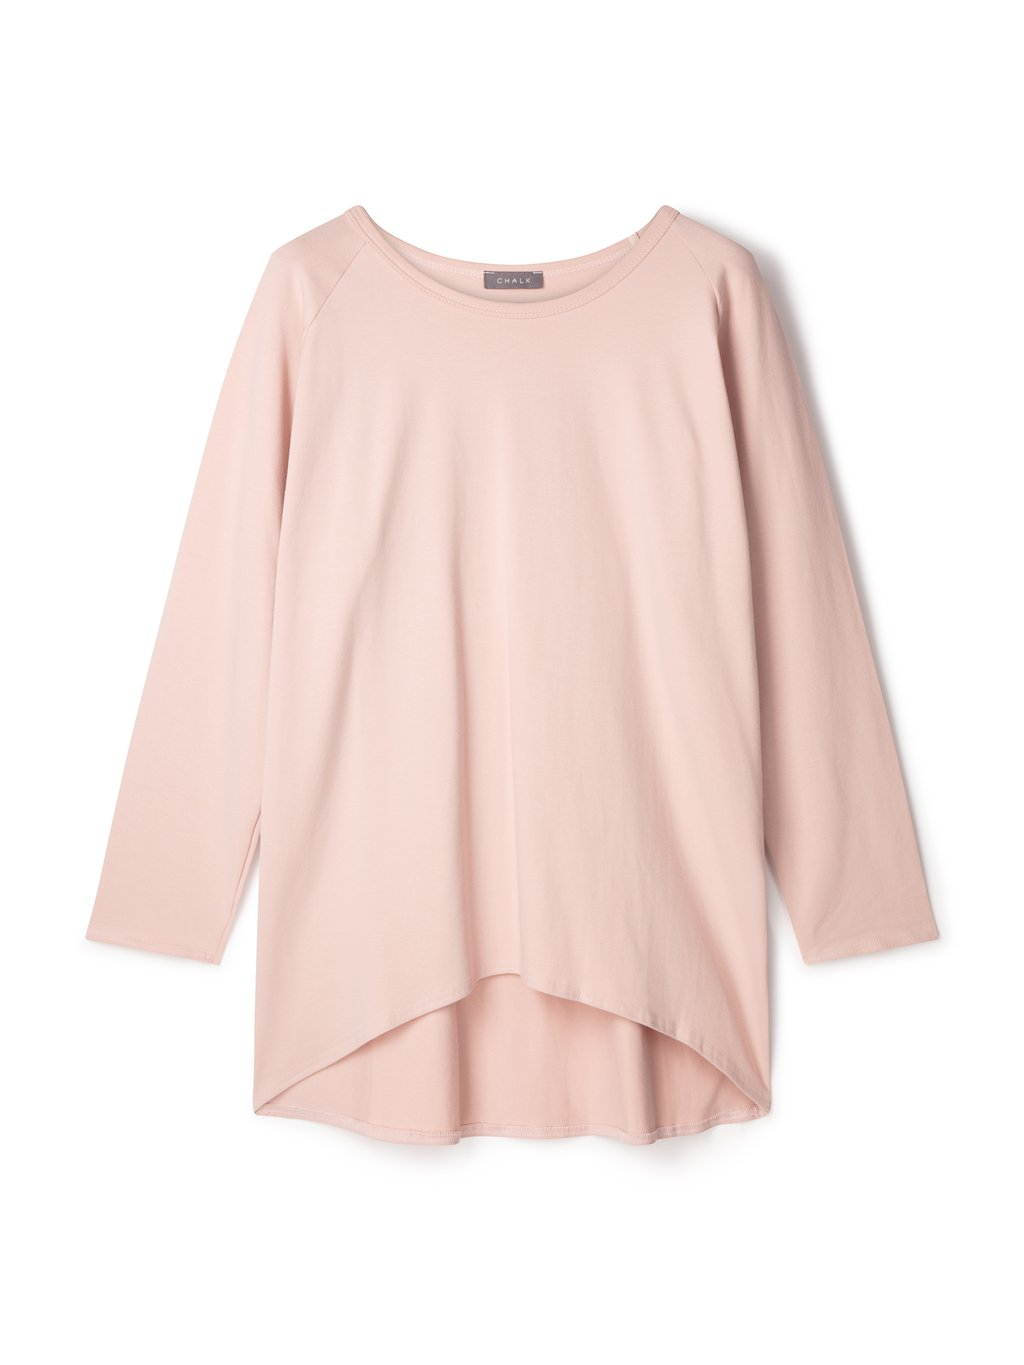 Chalk robyn top pink